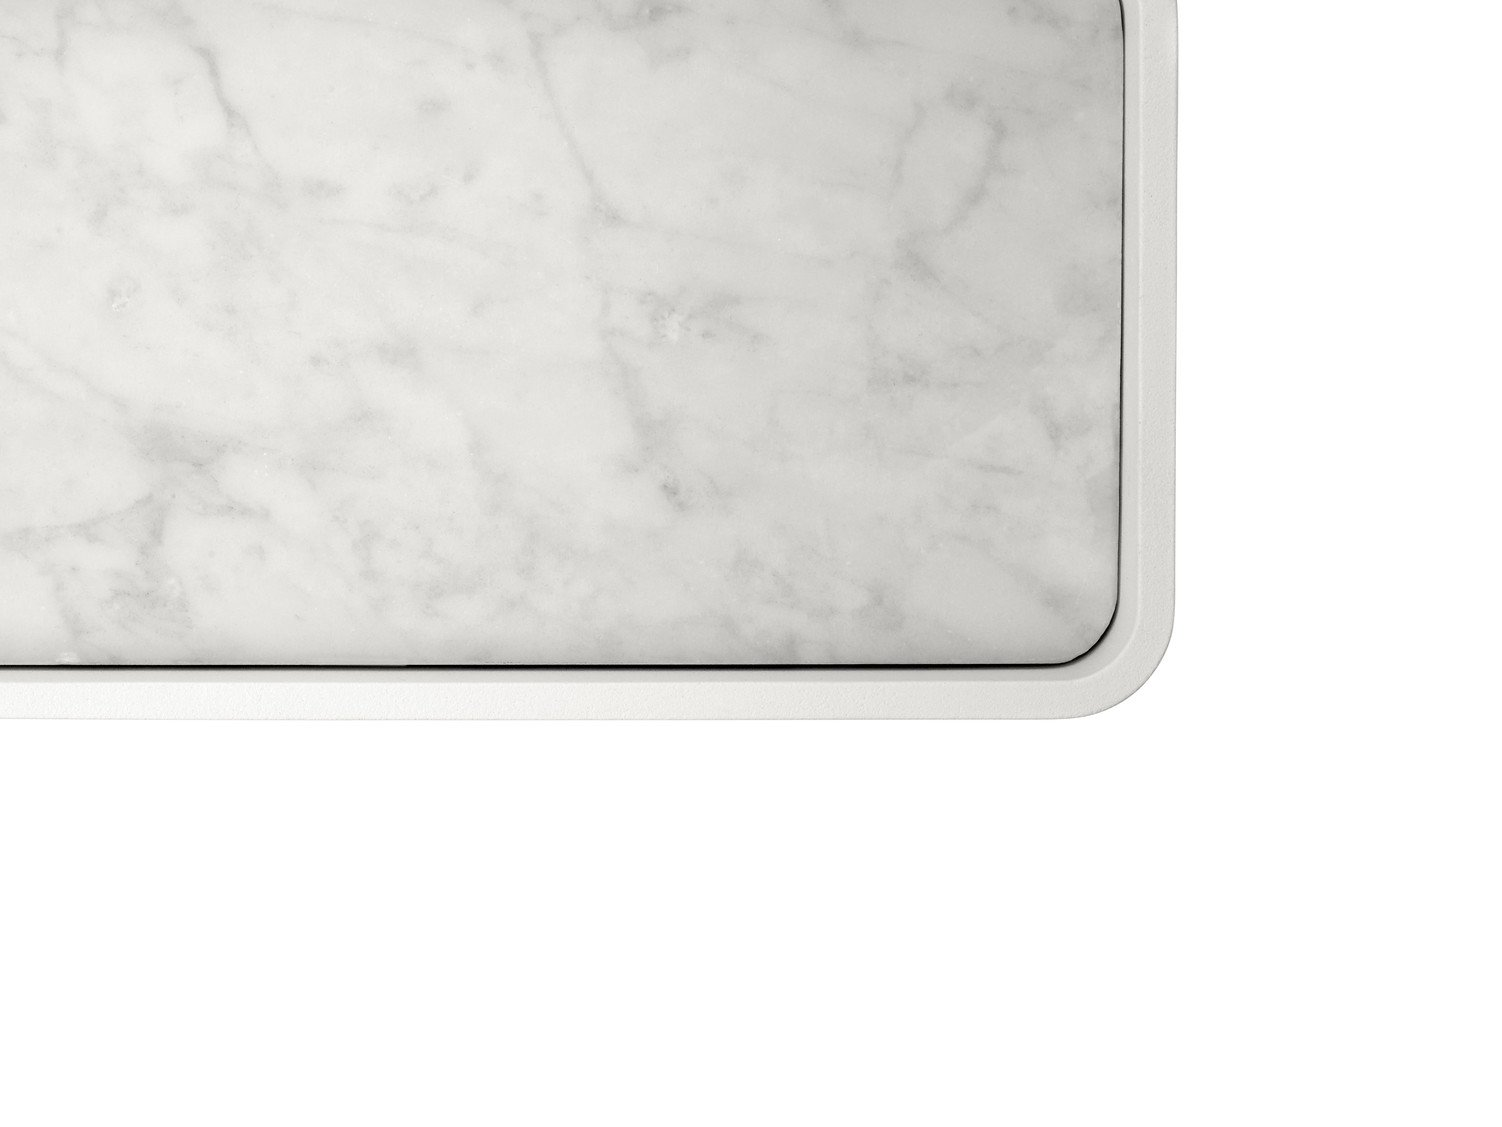 Shower Tray White Marble by Norm Architects for Menu